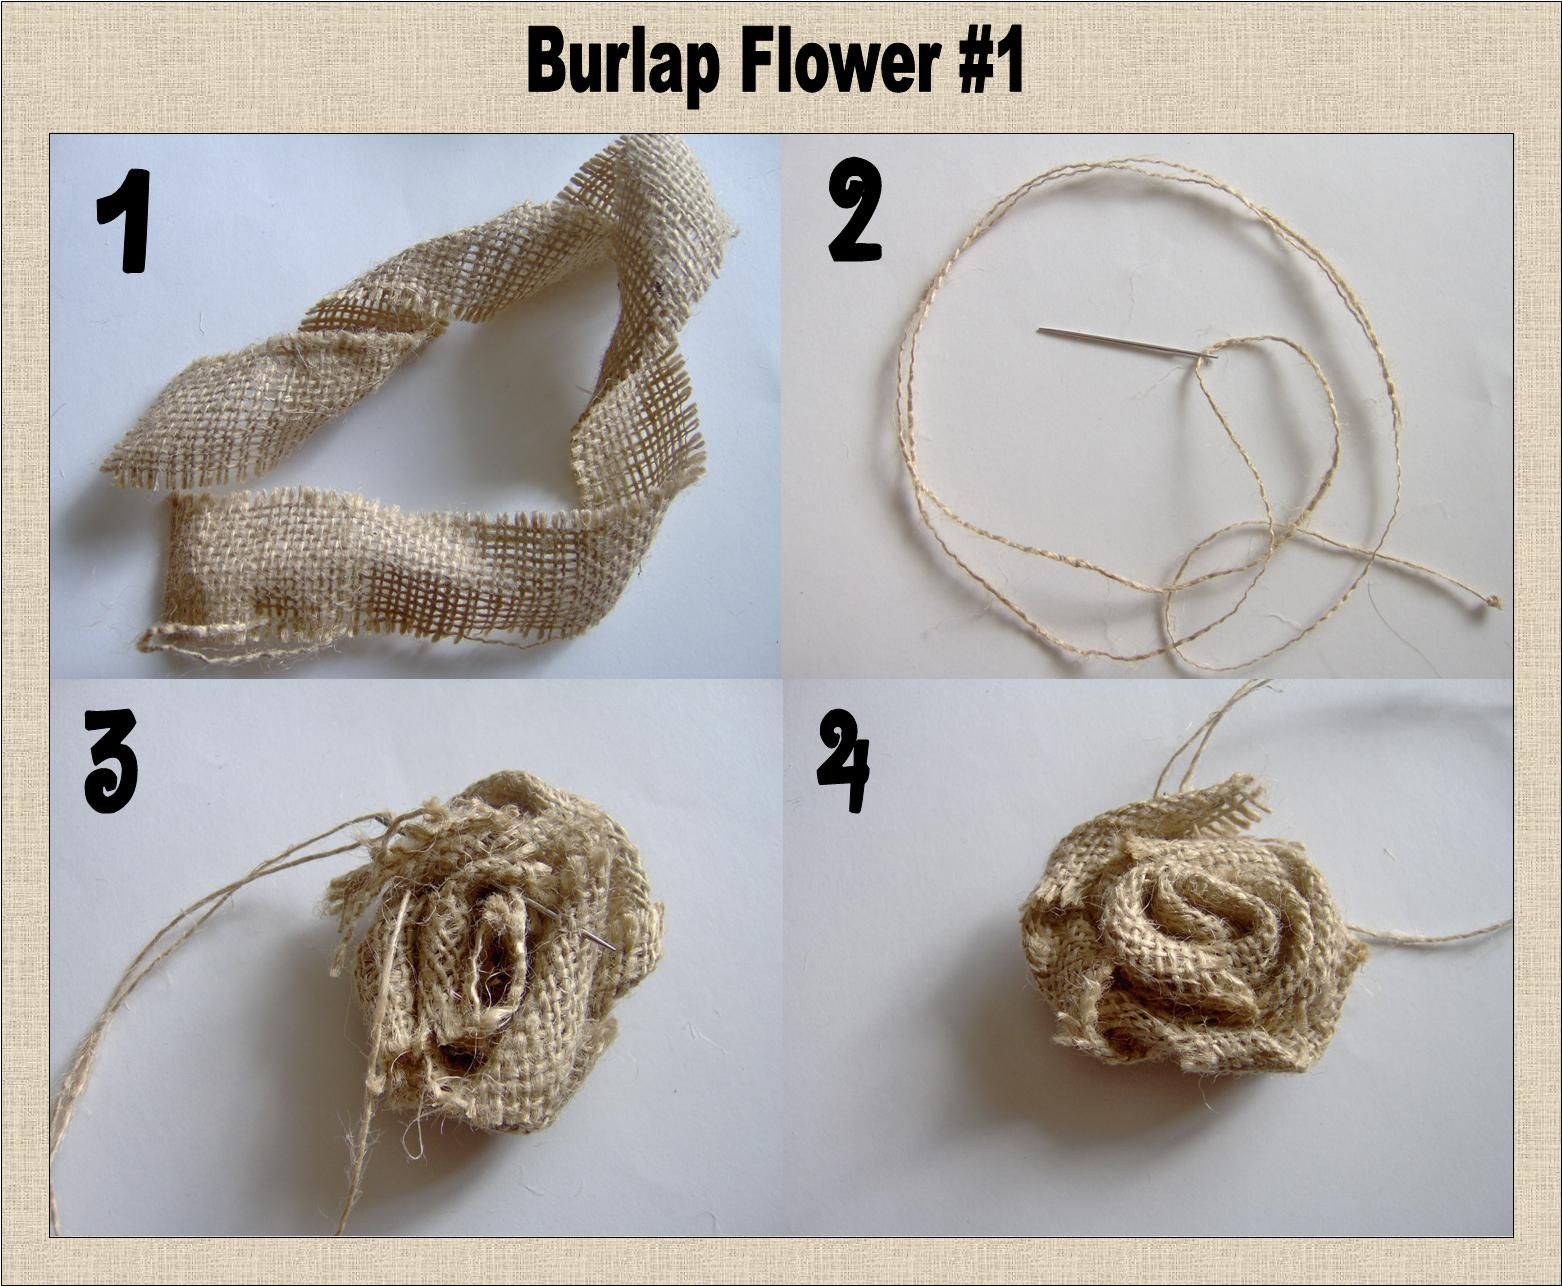 Today\'s Fabulous Finds: 3 Burlap Flower Tutorials from \